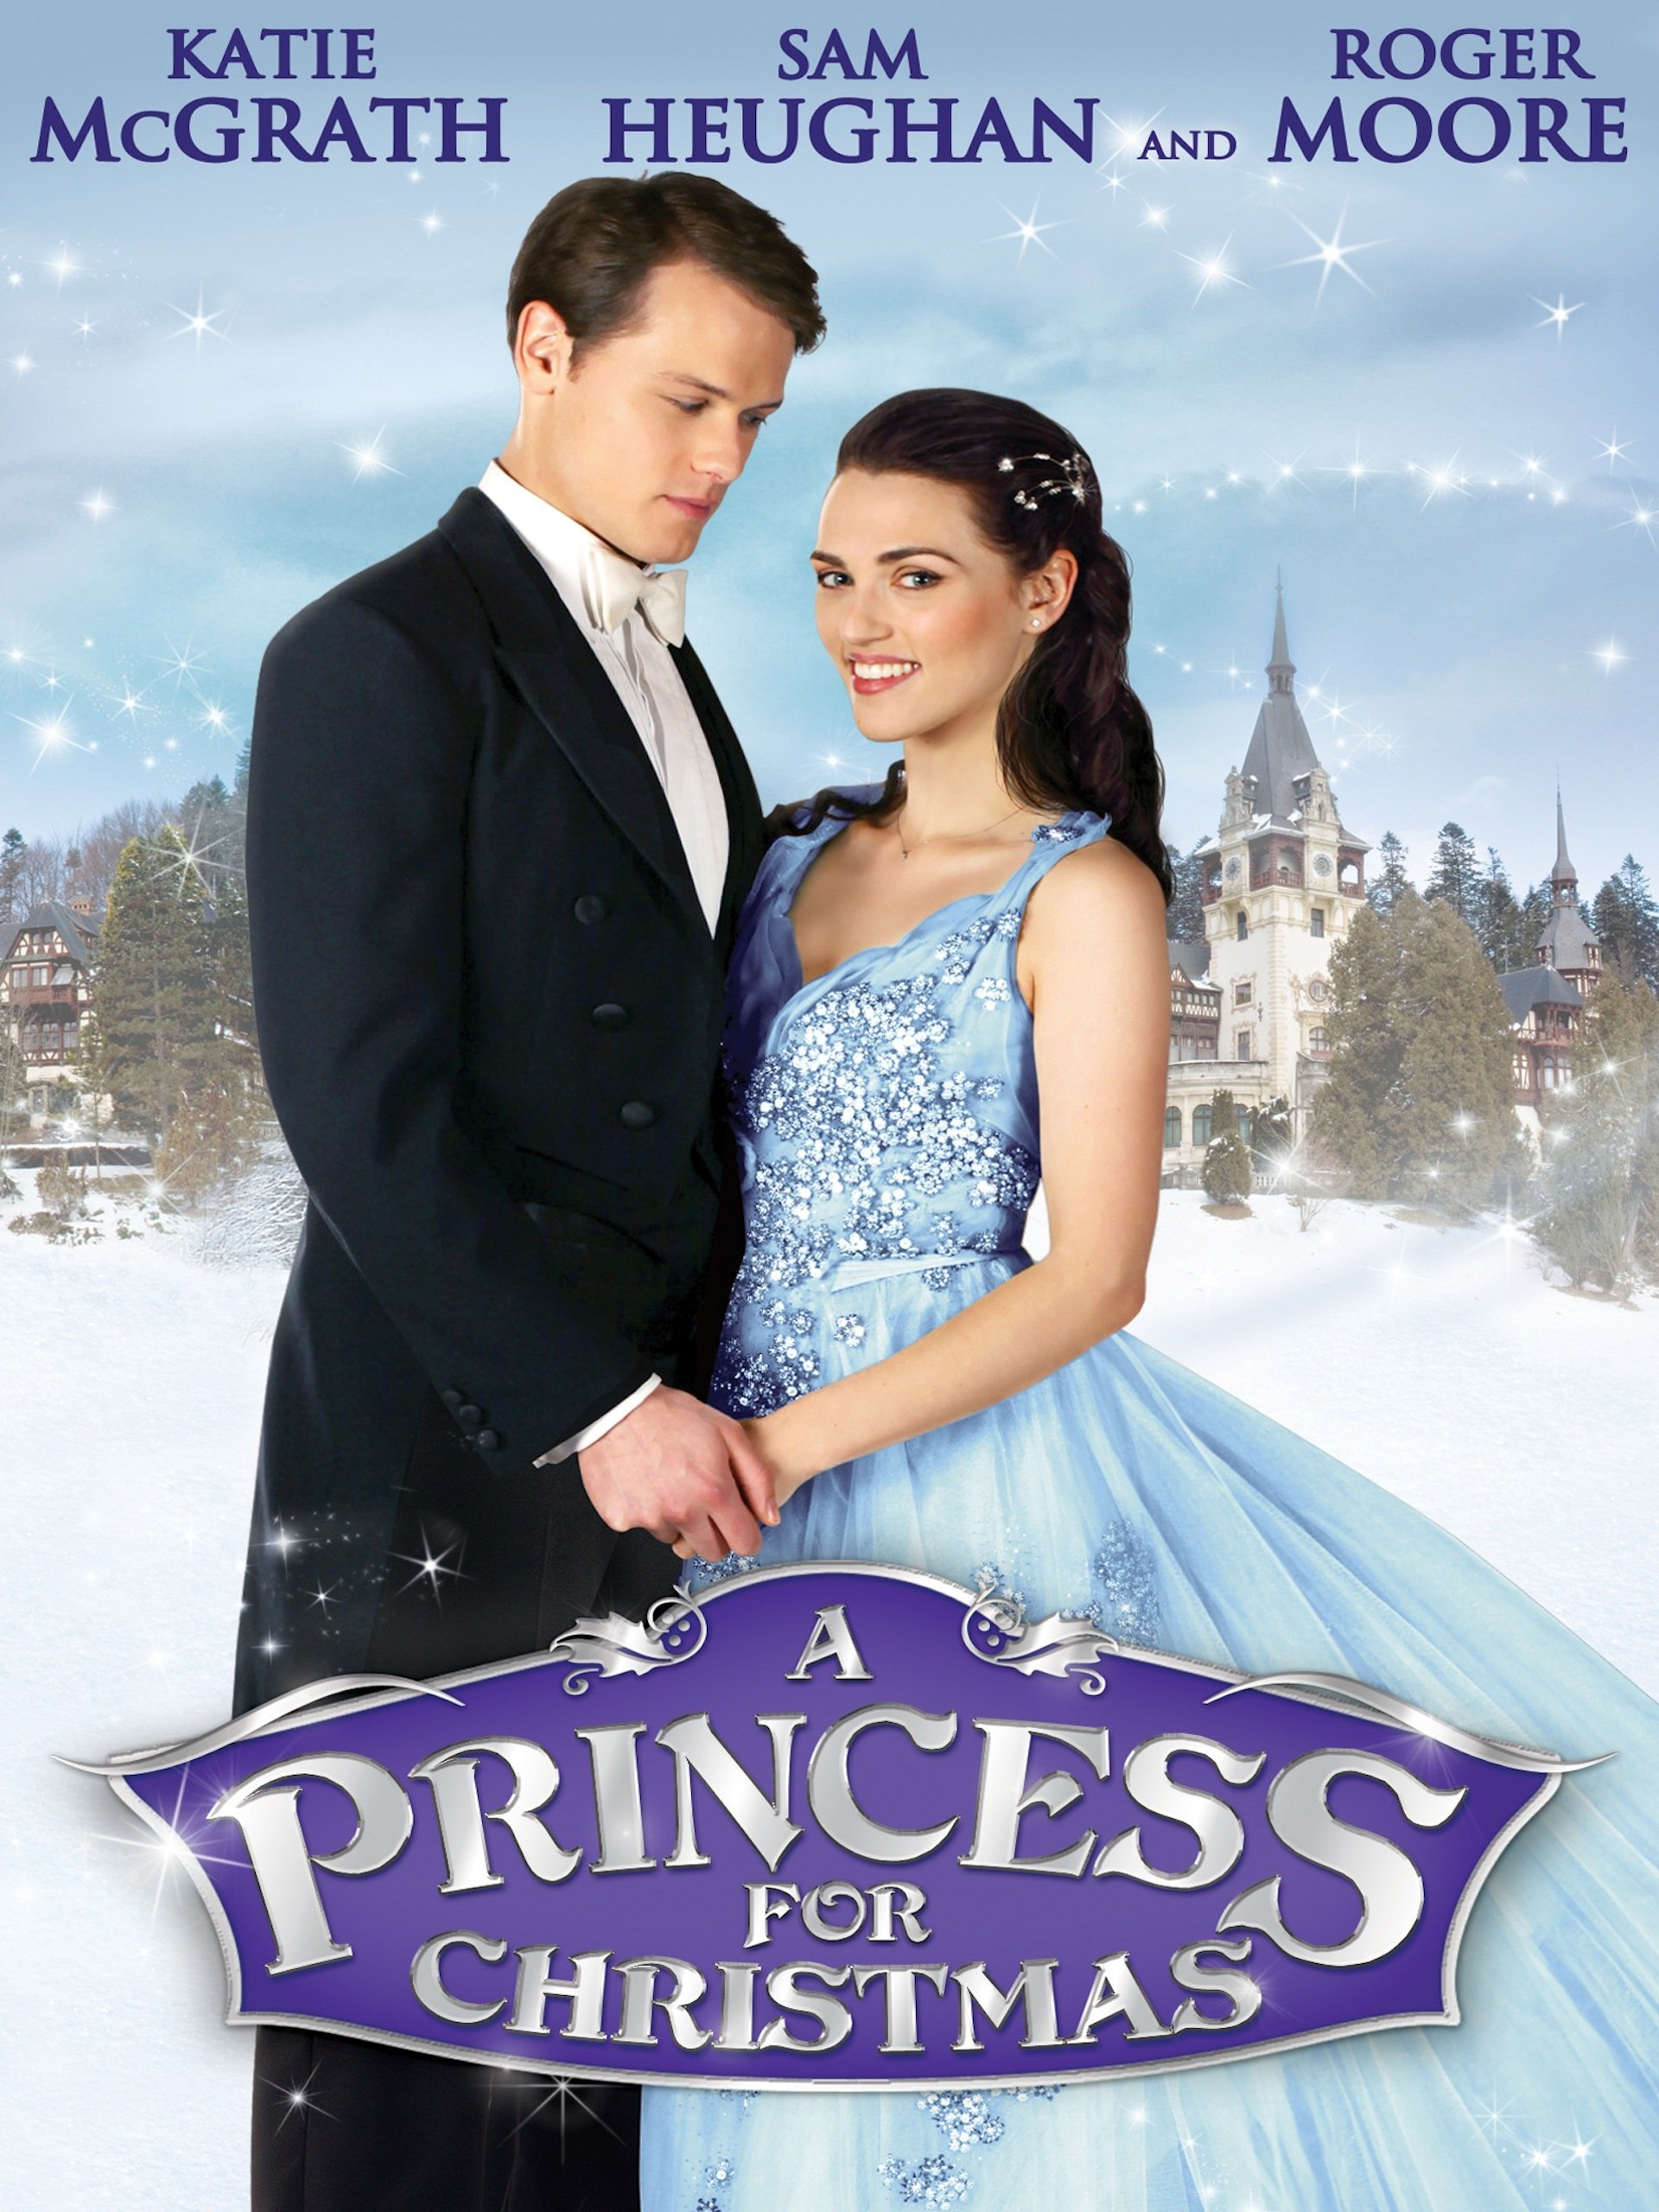 Amazon.com: A Princess For Christmas: Katie McGrath, Sir Roger Moore ...